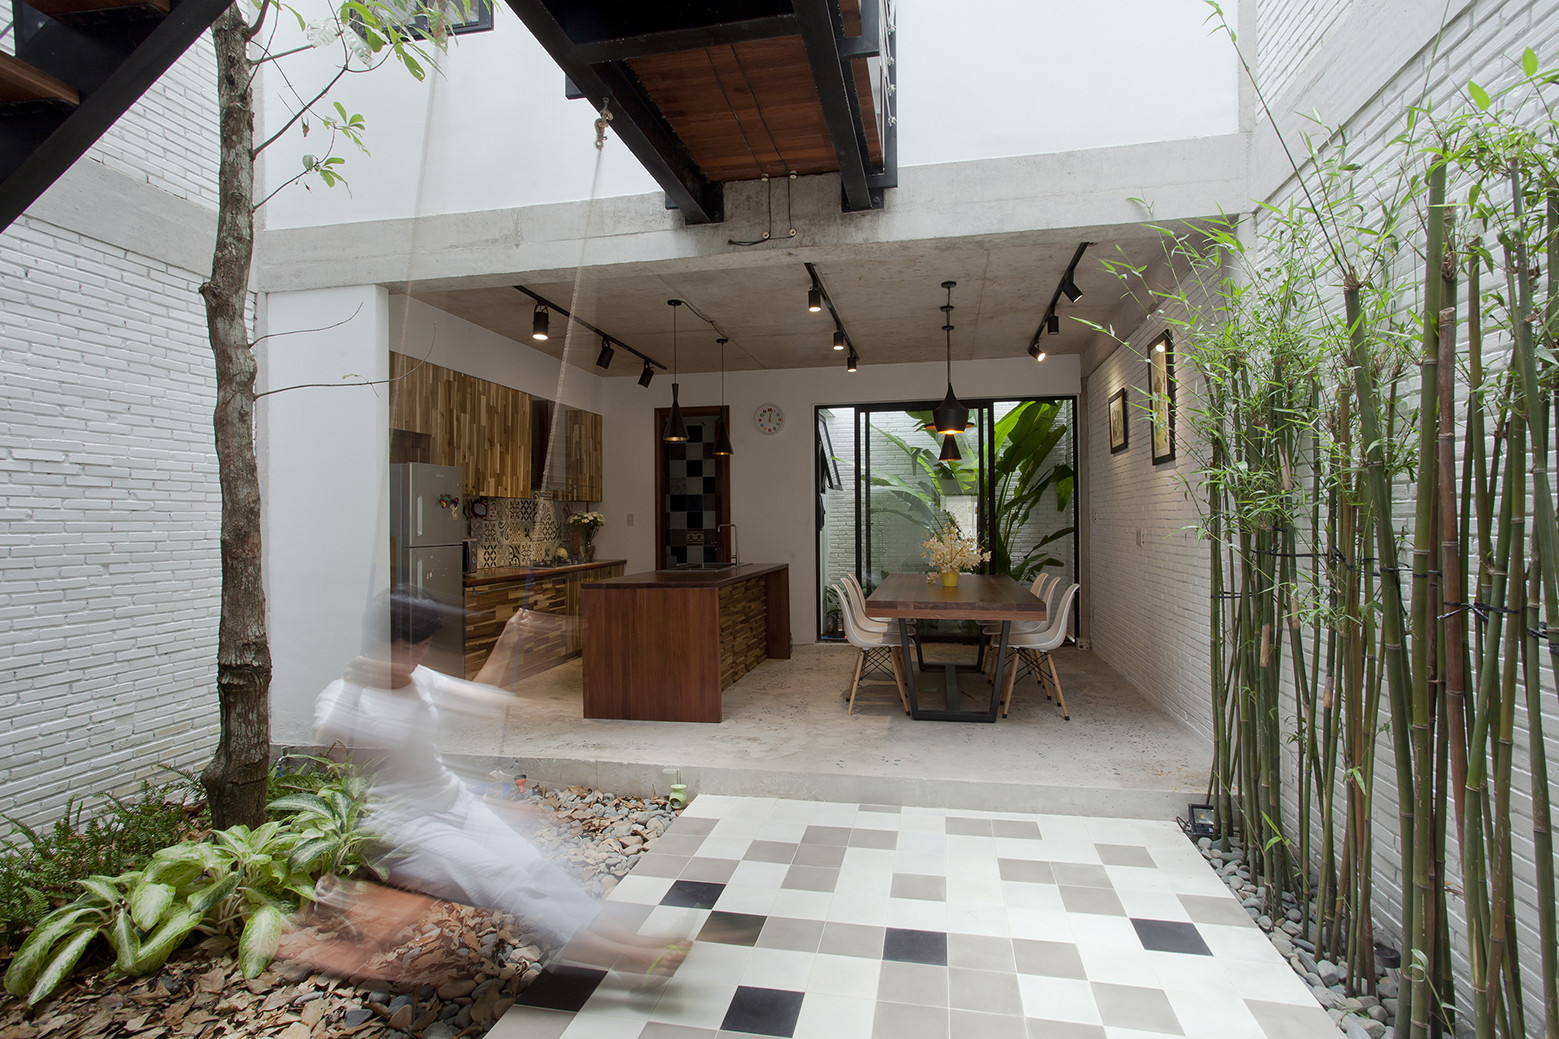 B House / i.House Architecture and Construction, © Le Canh Van, Vu Ngoc Ha